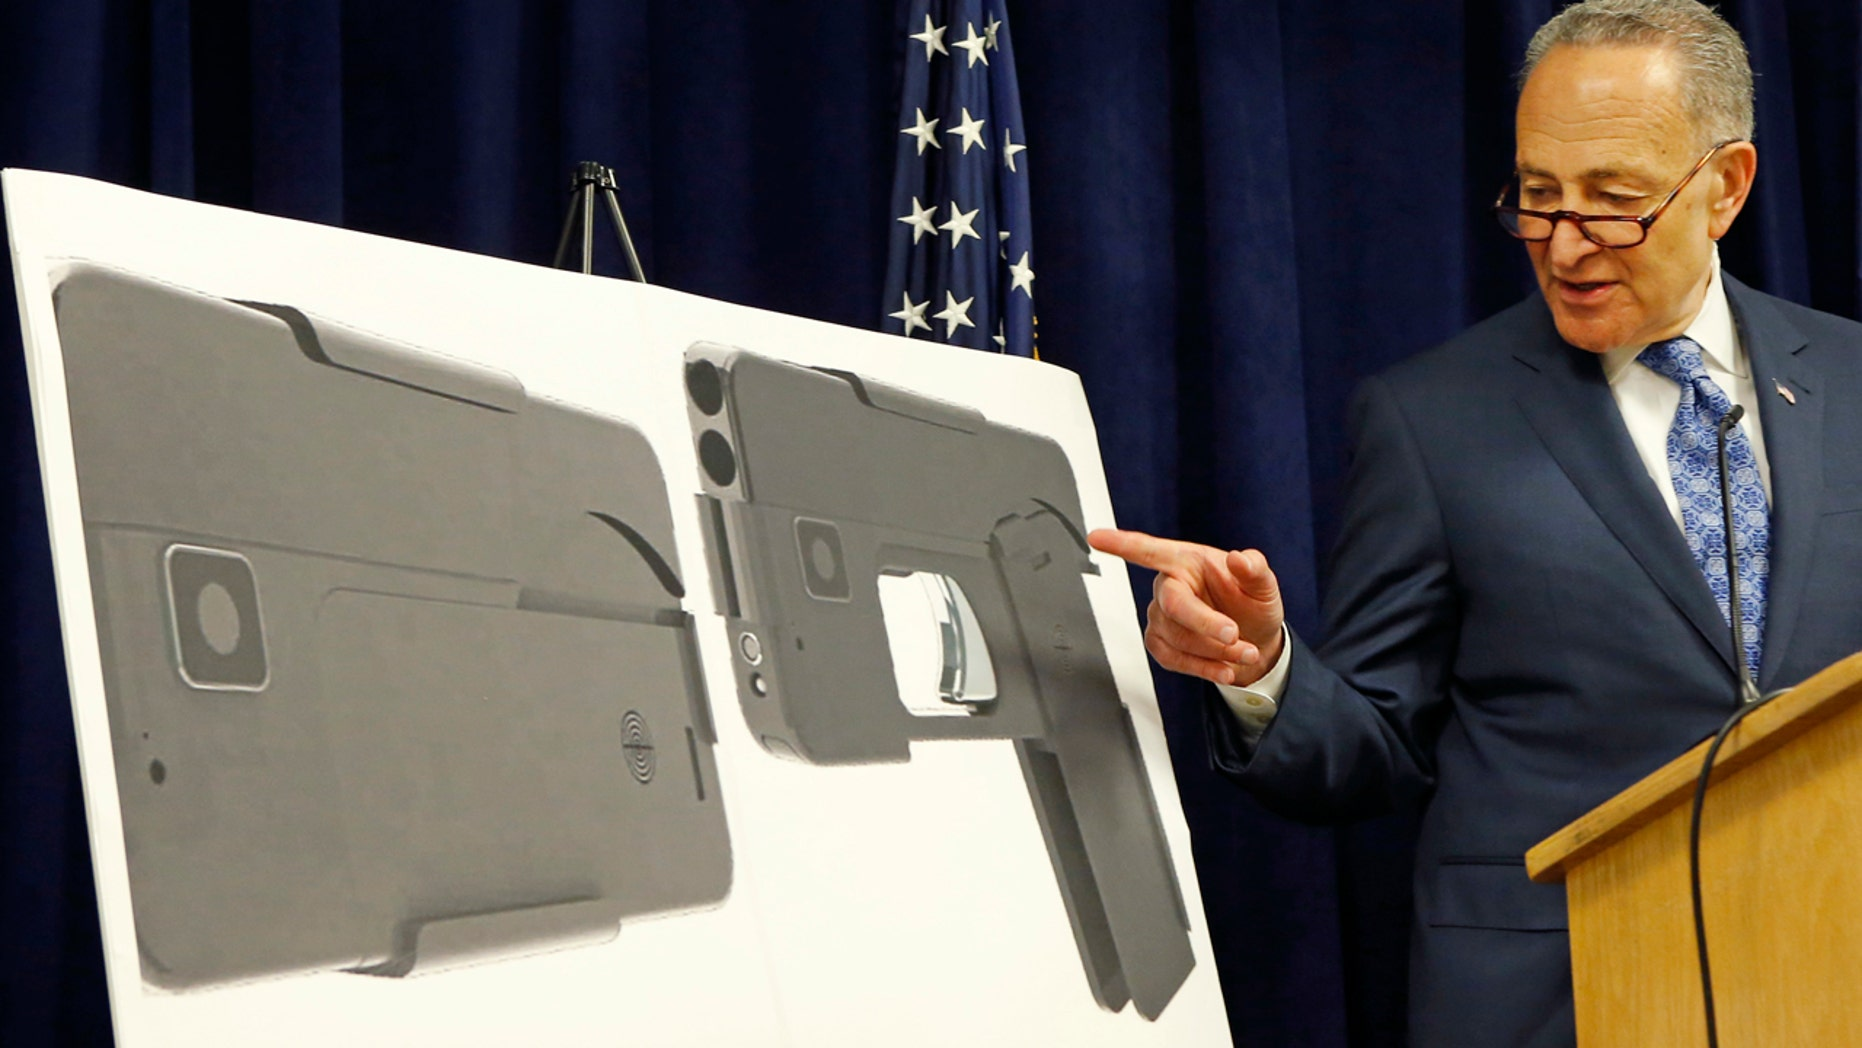 April 4, 2016: U.S. Sen Charles Schumer, (D-New York), points to photographs of what appears to be a cell phone, but is actually a handgun, during a press conference in his office